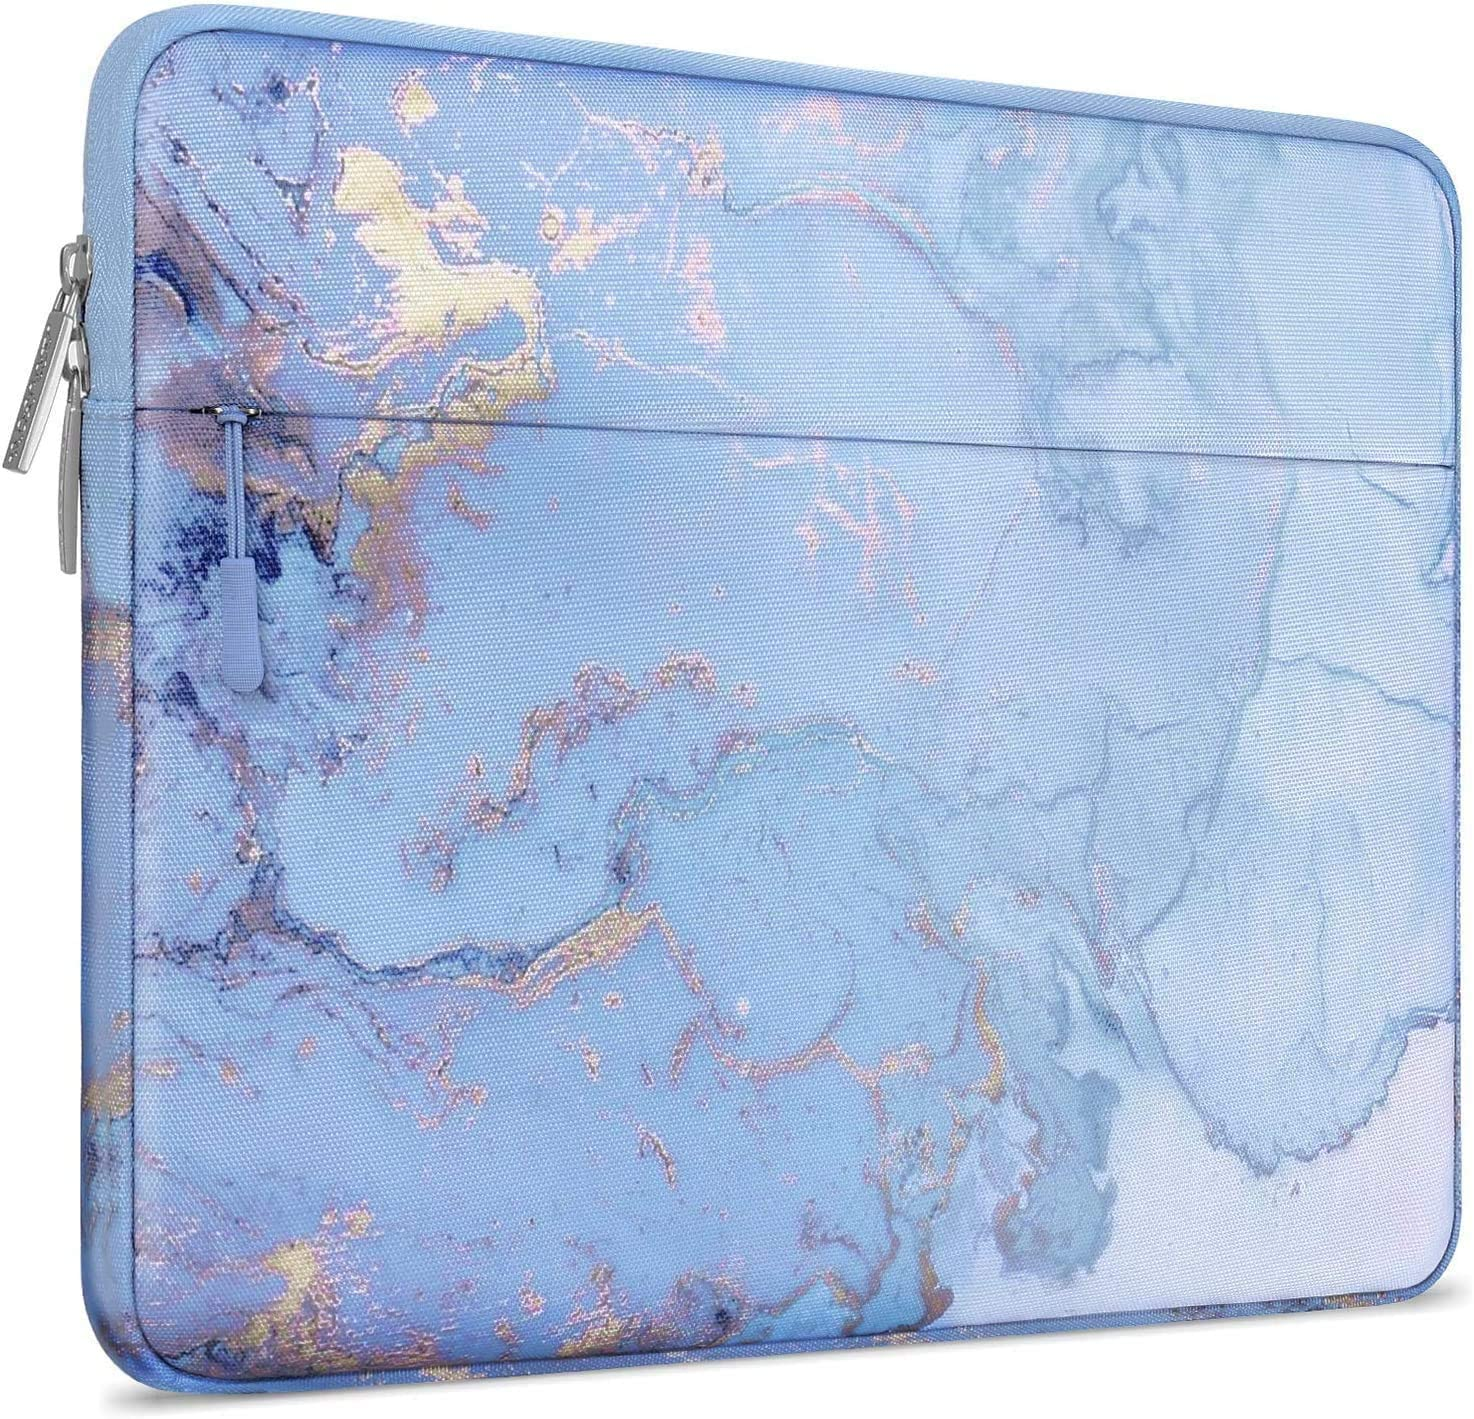 MOSISO Laptop Sleeve Compatible with 11.6-12.3 inch Acer Chromebook R11/HP Stream/Samsung/Lenovo C330/ASUS C202/MacBook Air 11/ Surface Pro X/7/6/5/4/3, Polyester Horizontal Watercolor Marble Bag